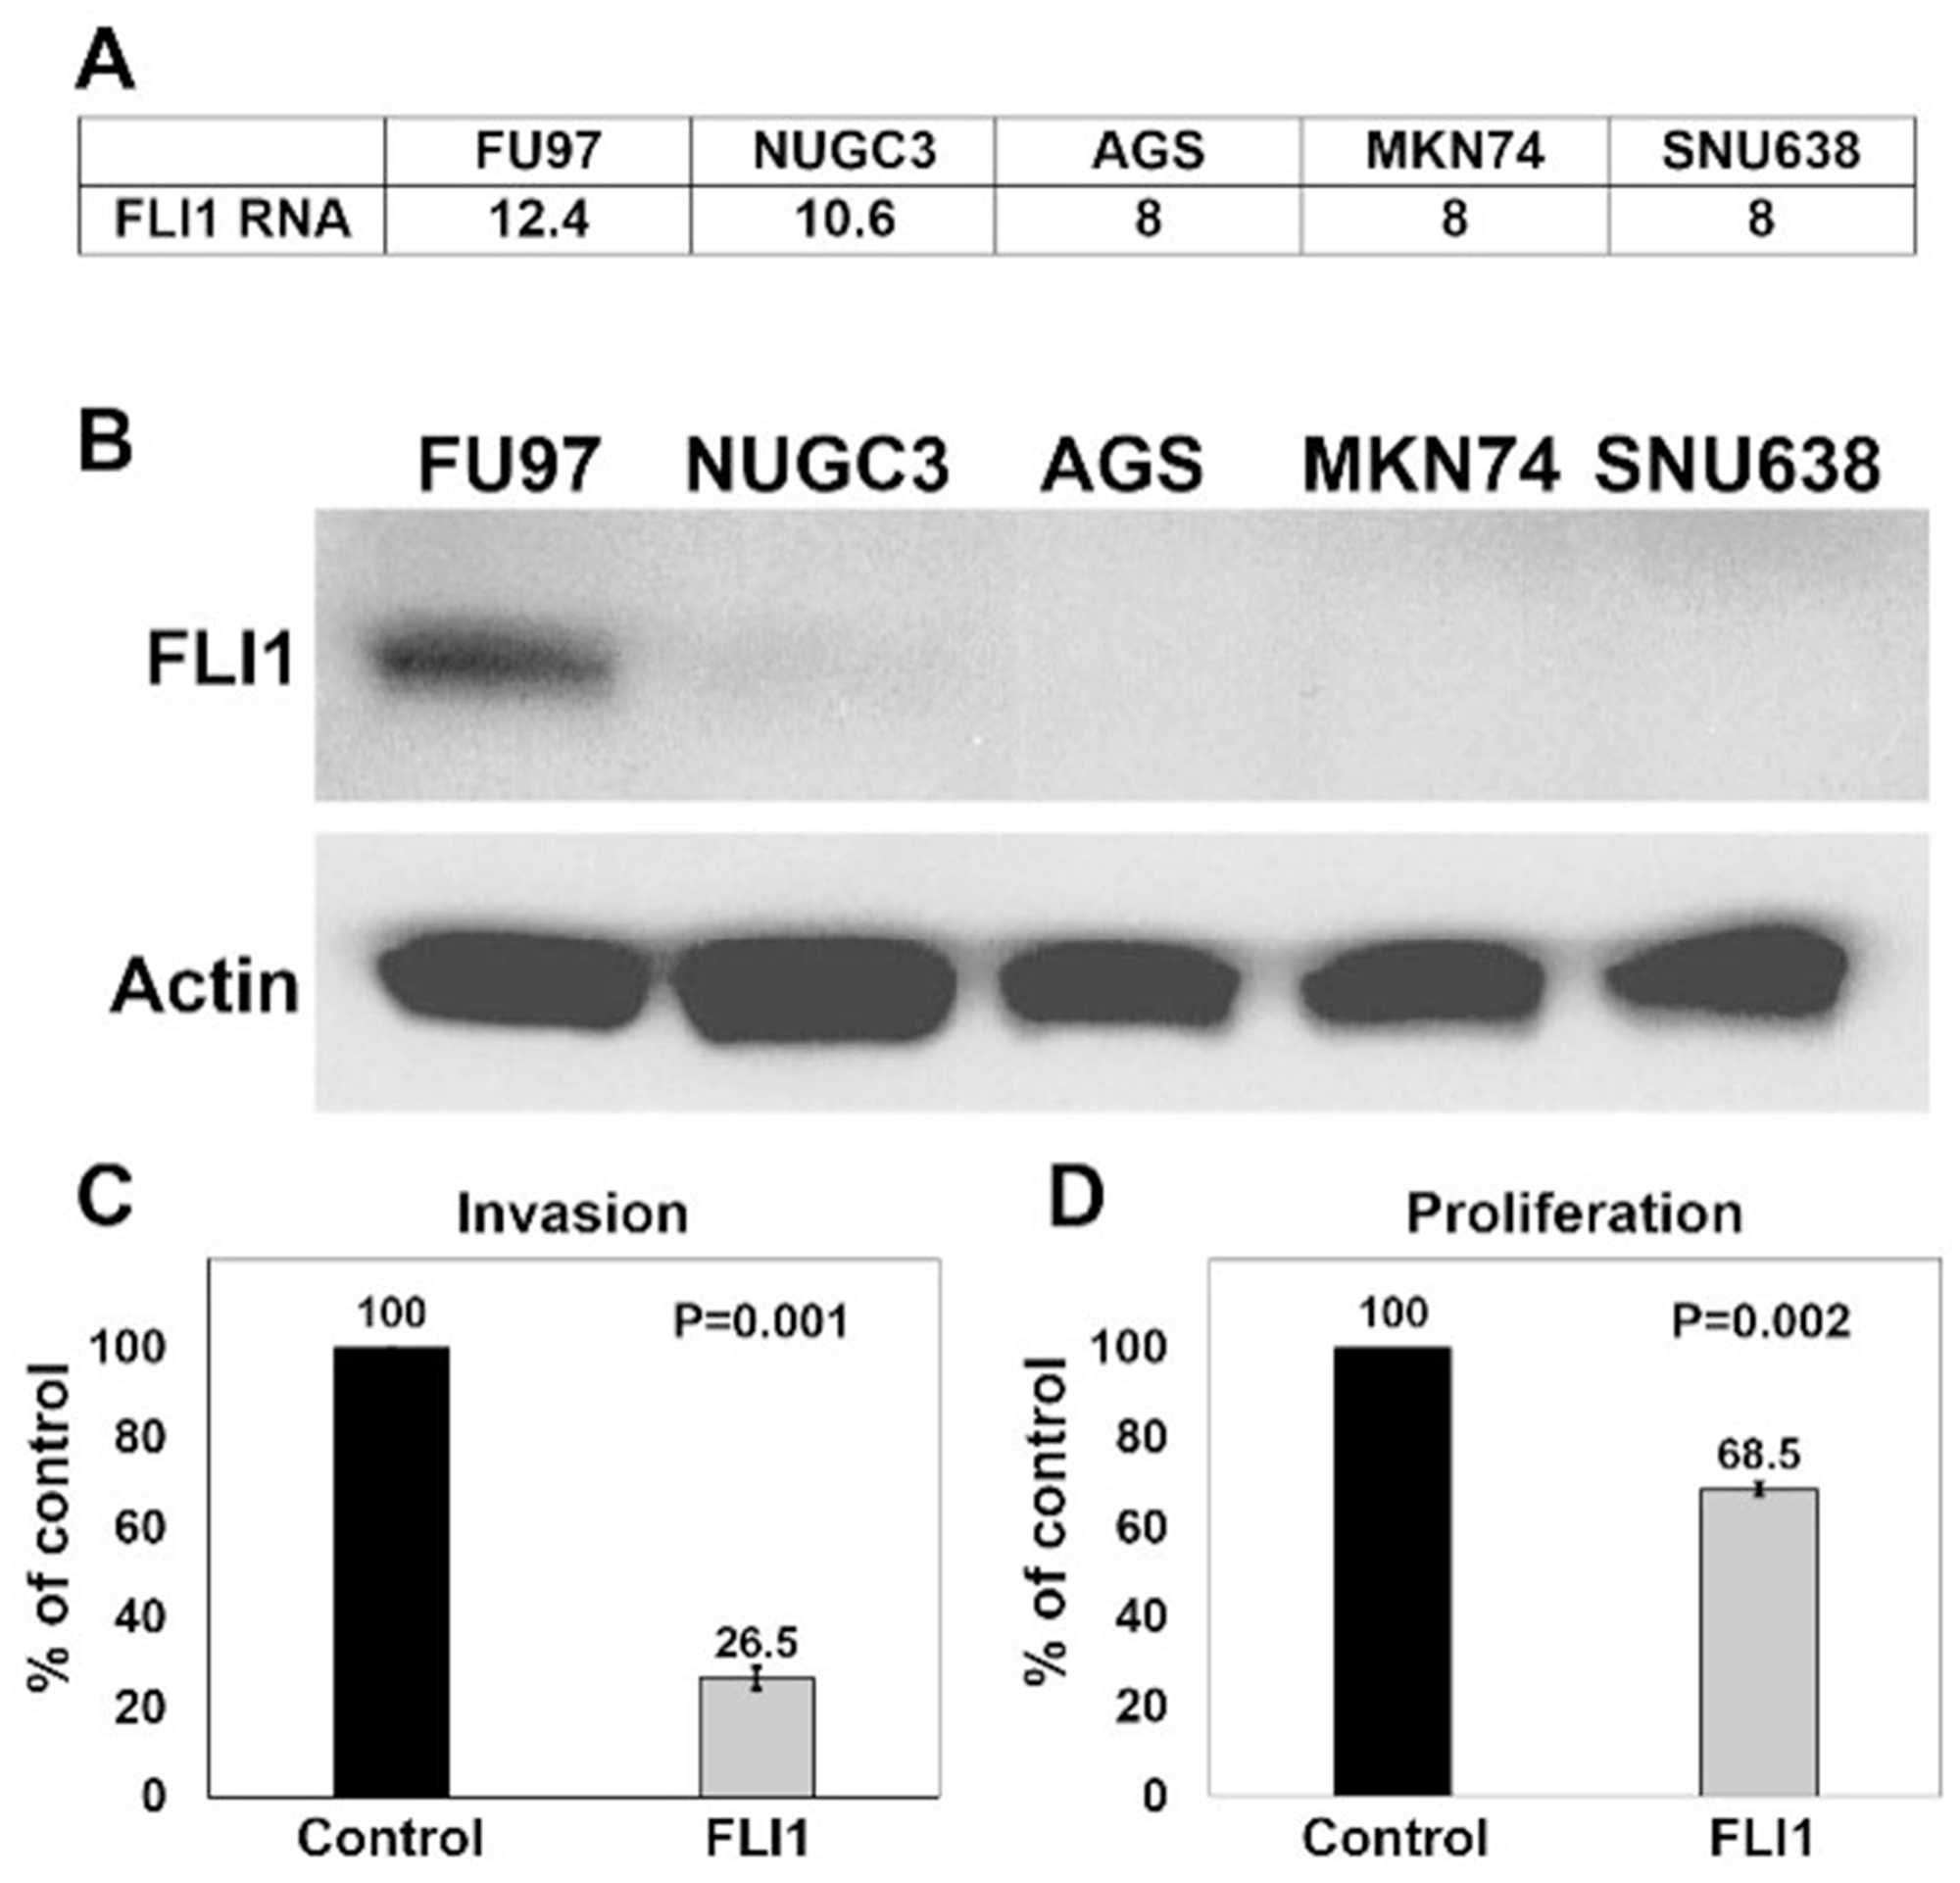 Overexpression of FLI1 in AGS cells inhibits invasion and proliferation